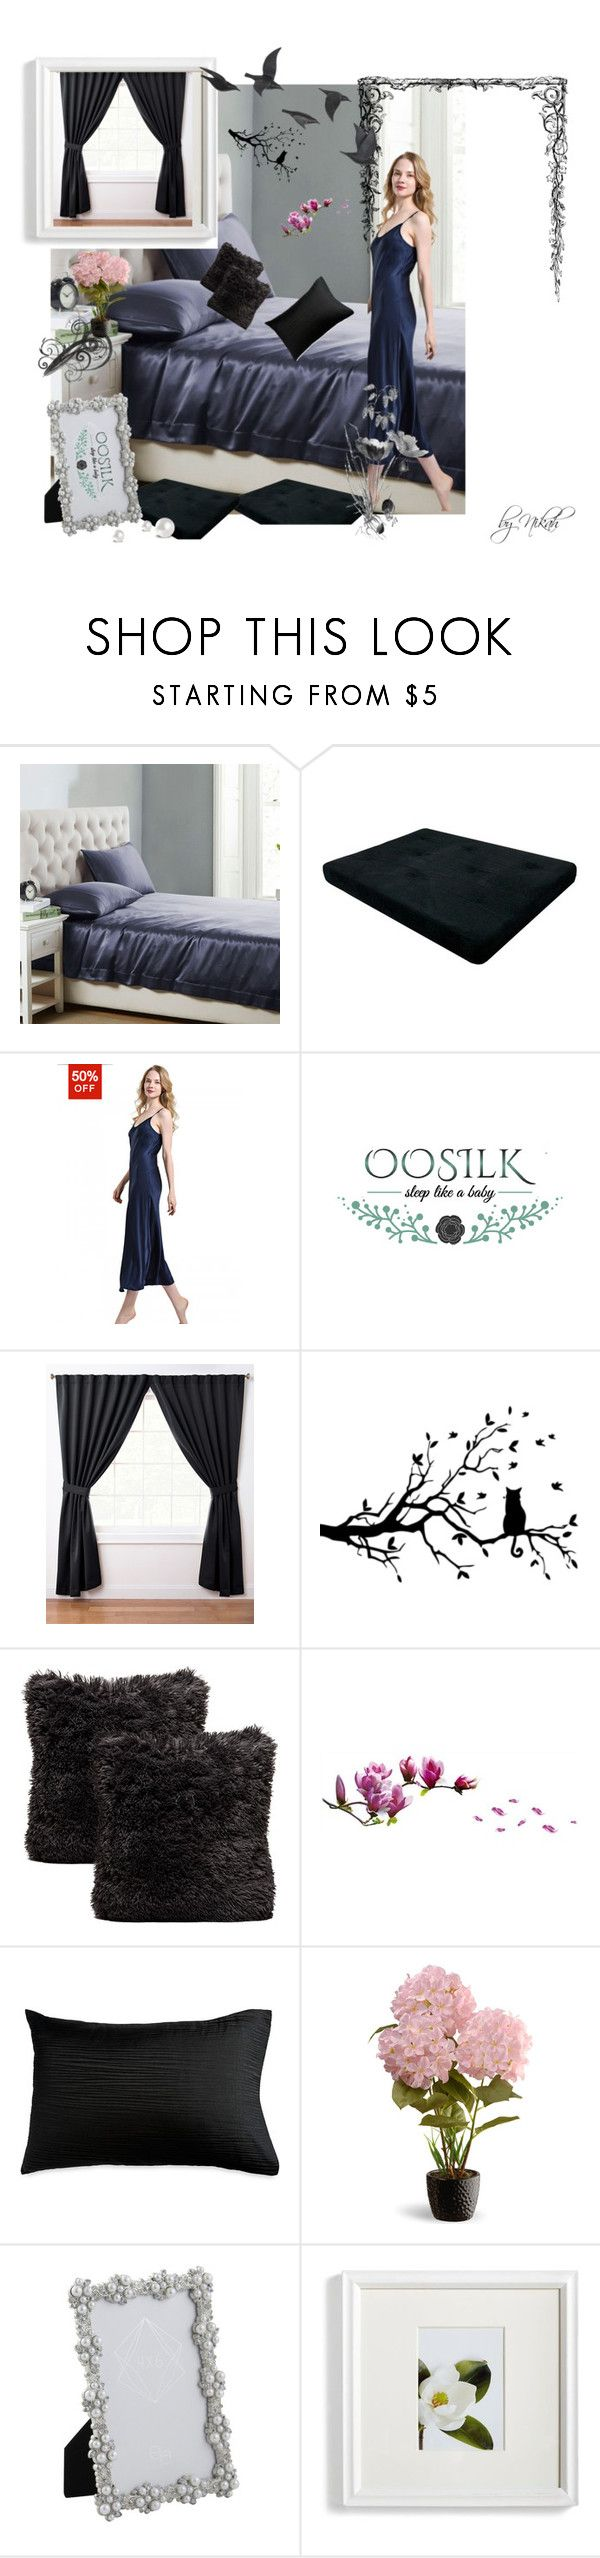 """""""Oosilk-bedding 15"""" by azrahadzic on Polyvore featuring interior, interiors, interior design, home, home decor, interior decorating, Dorel, ExceptionalSheets, Donna Karan and National Tree Company"""